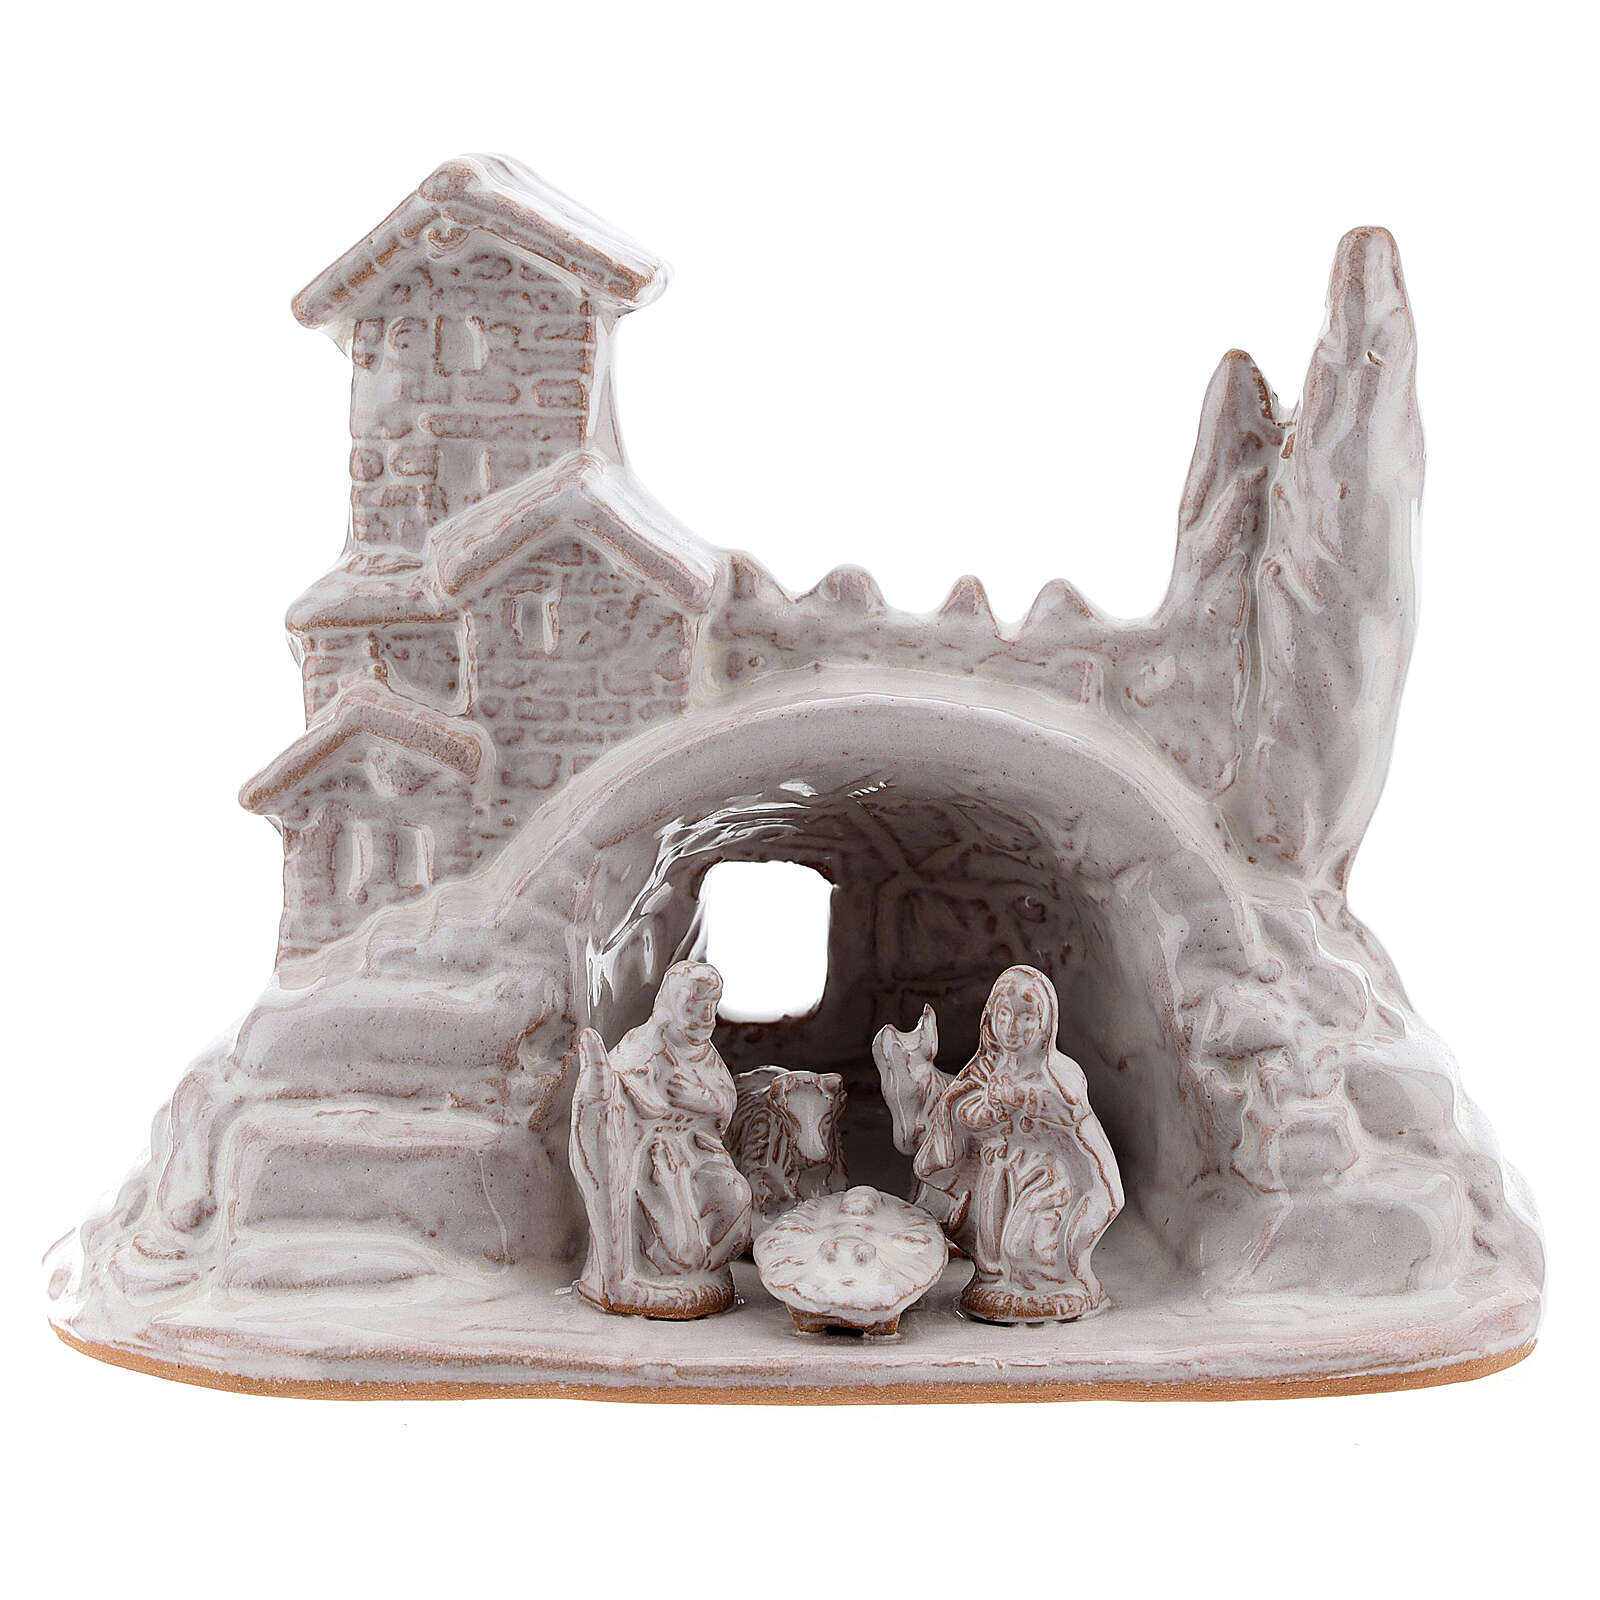 Miniature Nativity with hamlet in white Deruta terracotta 10 cm 4